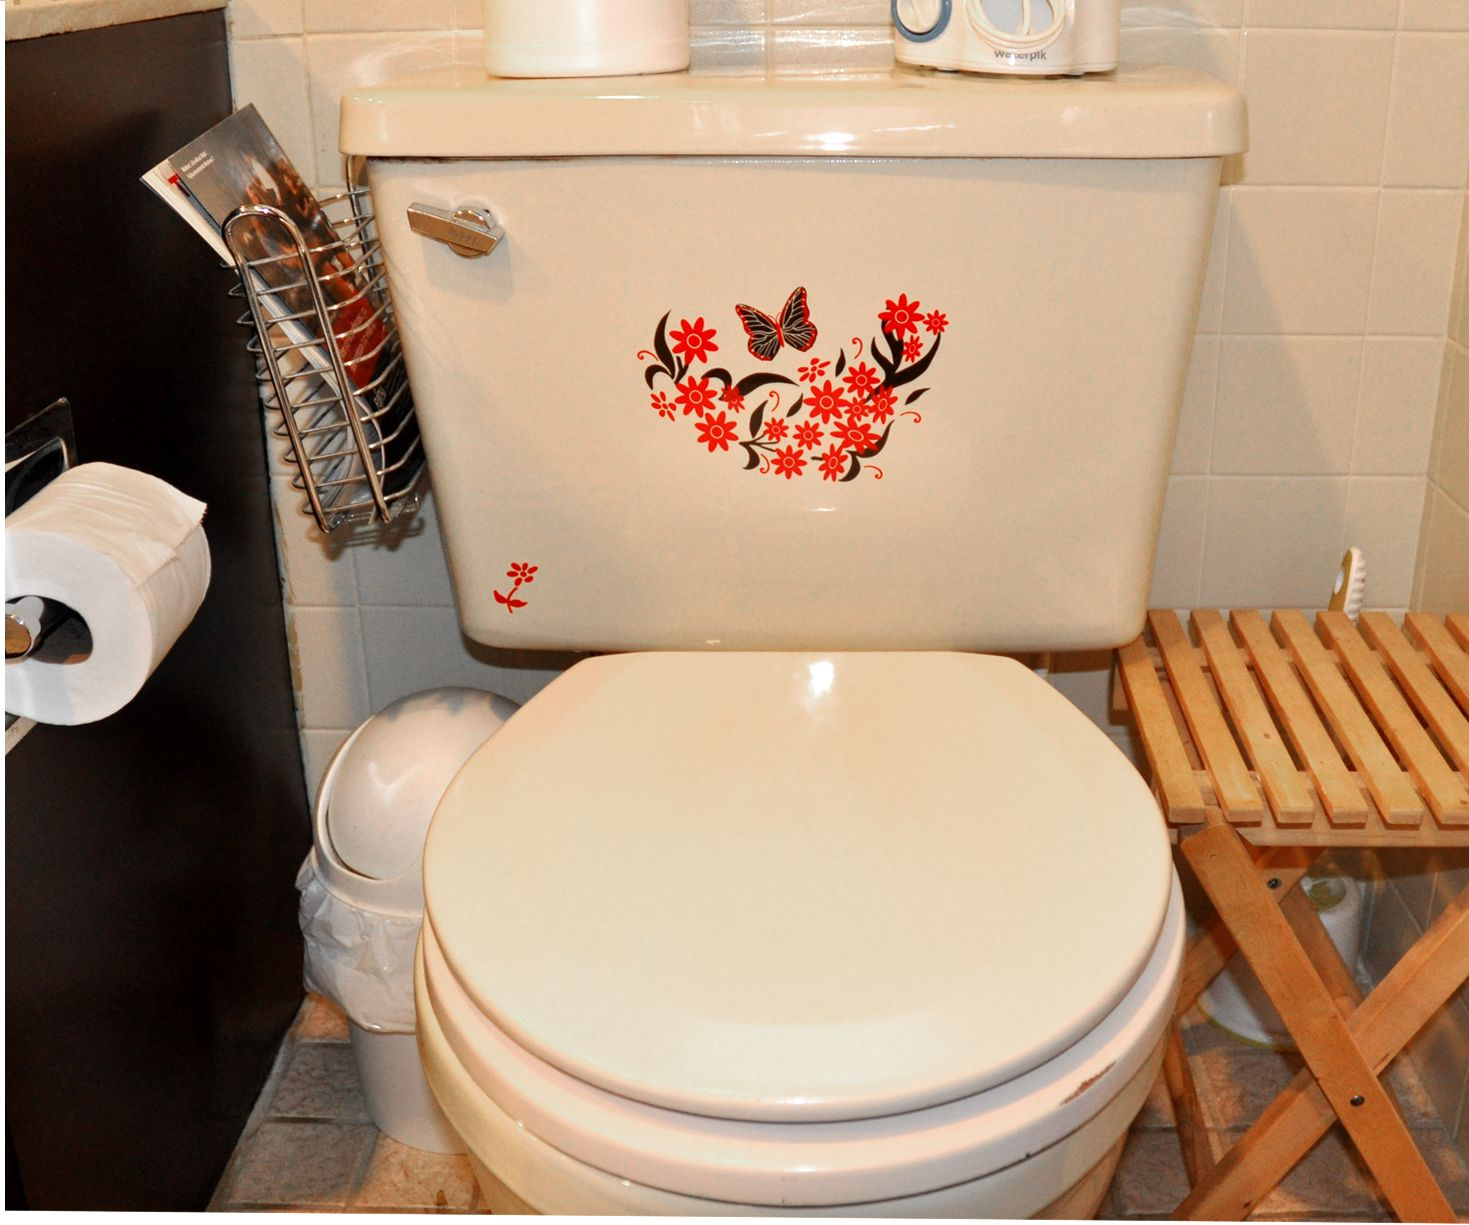 Daisy Splash Decals For A Toilet Tank Or Sink Or Mirror Toilet Tank Bathroom Decals Toilet